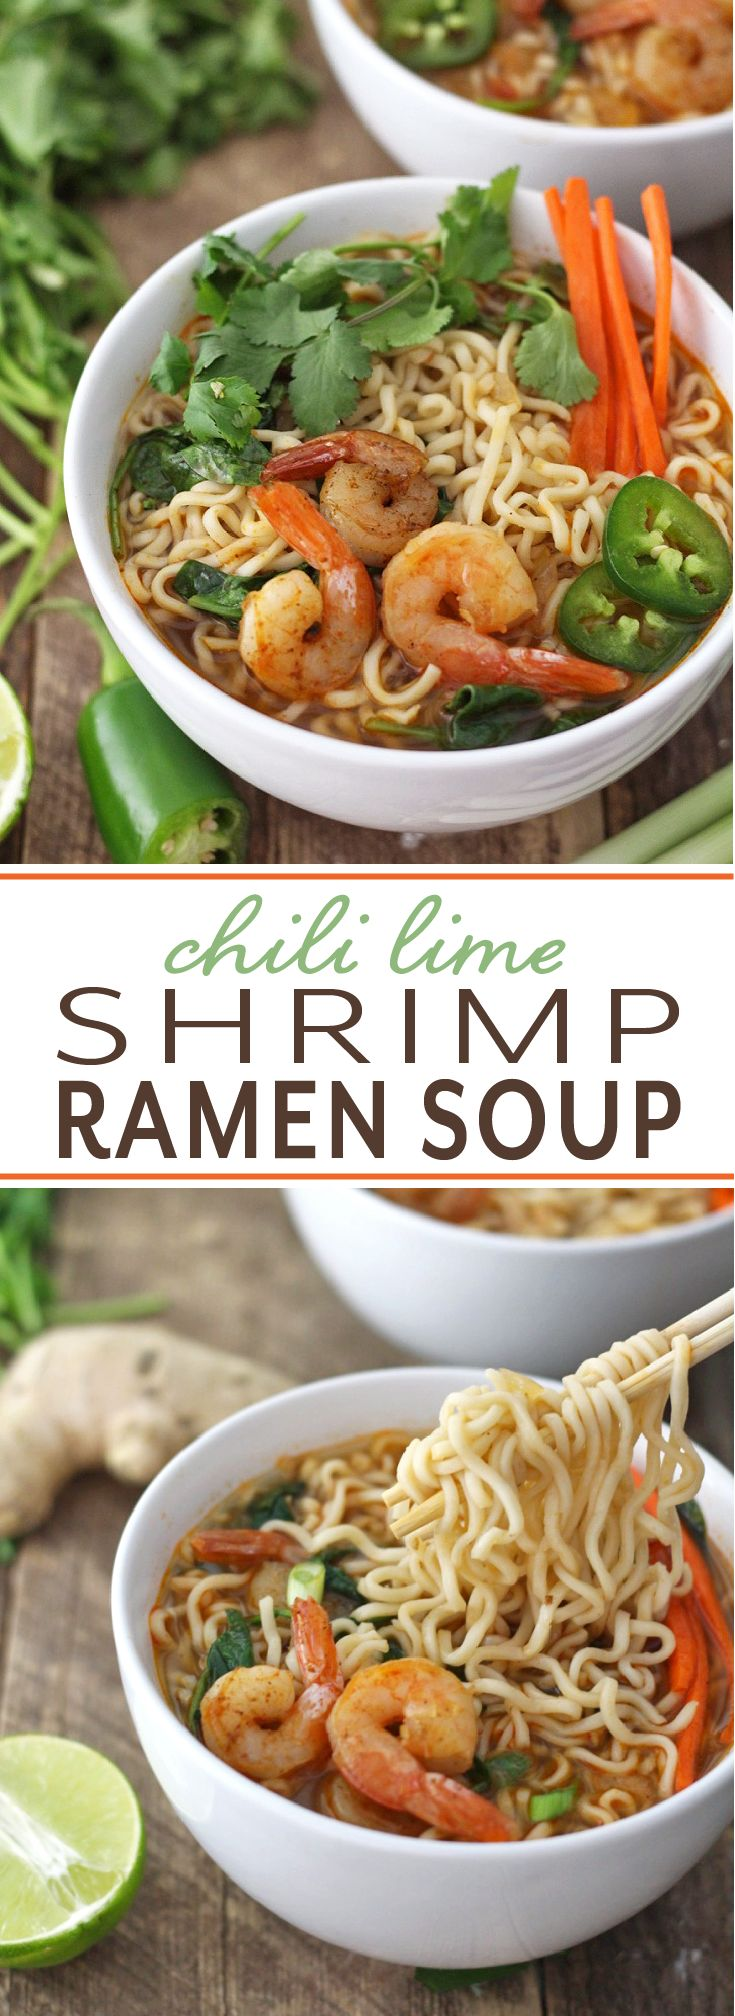 Perfect recipe to satisfy those adult cravings for ramen! Easy to make with vegetable broth, chili seasoning, shrimp and lots of ramen noodles.   Ramen noodles | Shrimp Ramen